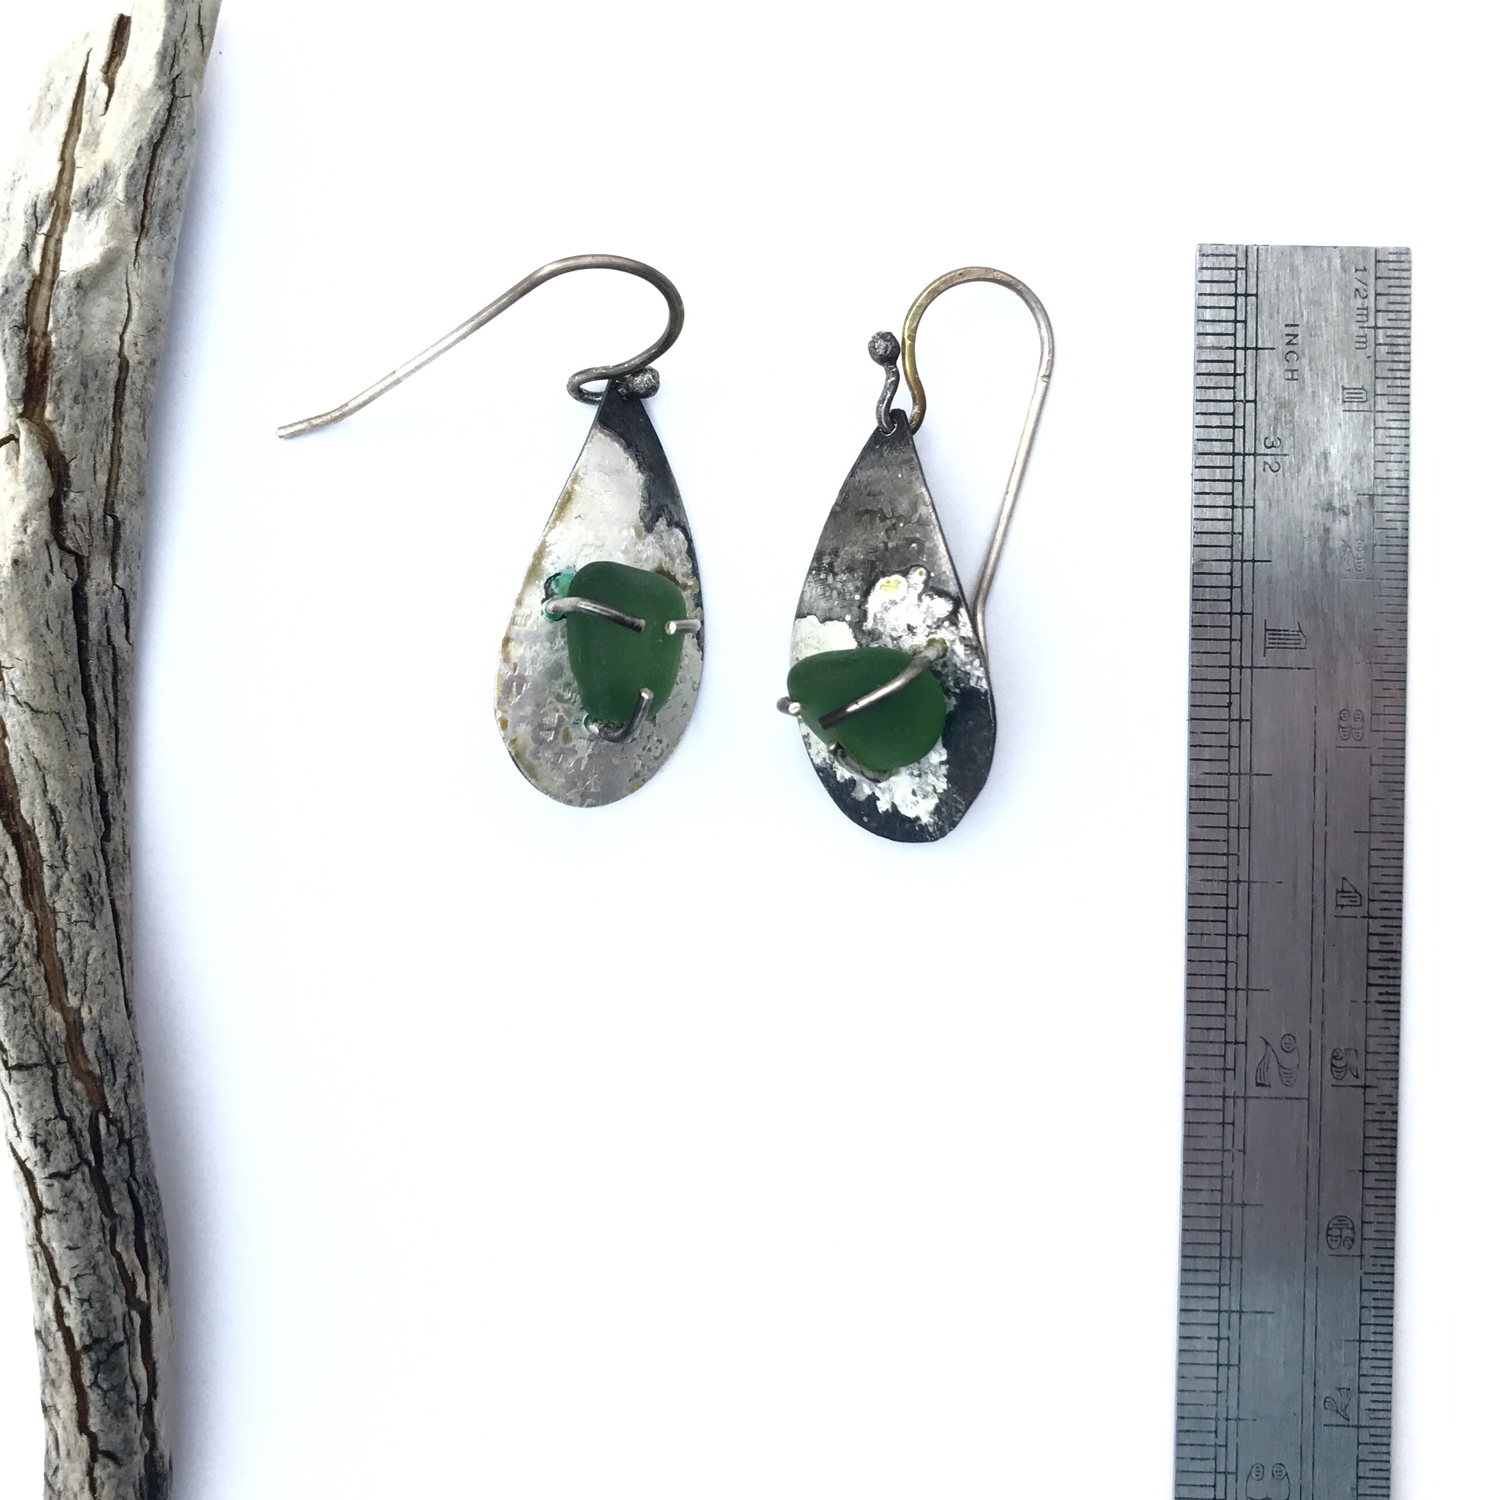 Sold Seagl Earrings One Of A Kind Rustic Silver With Green Teardrop Dangle